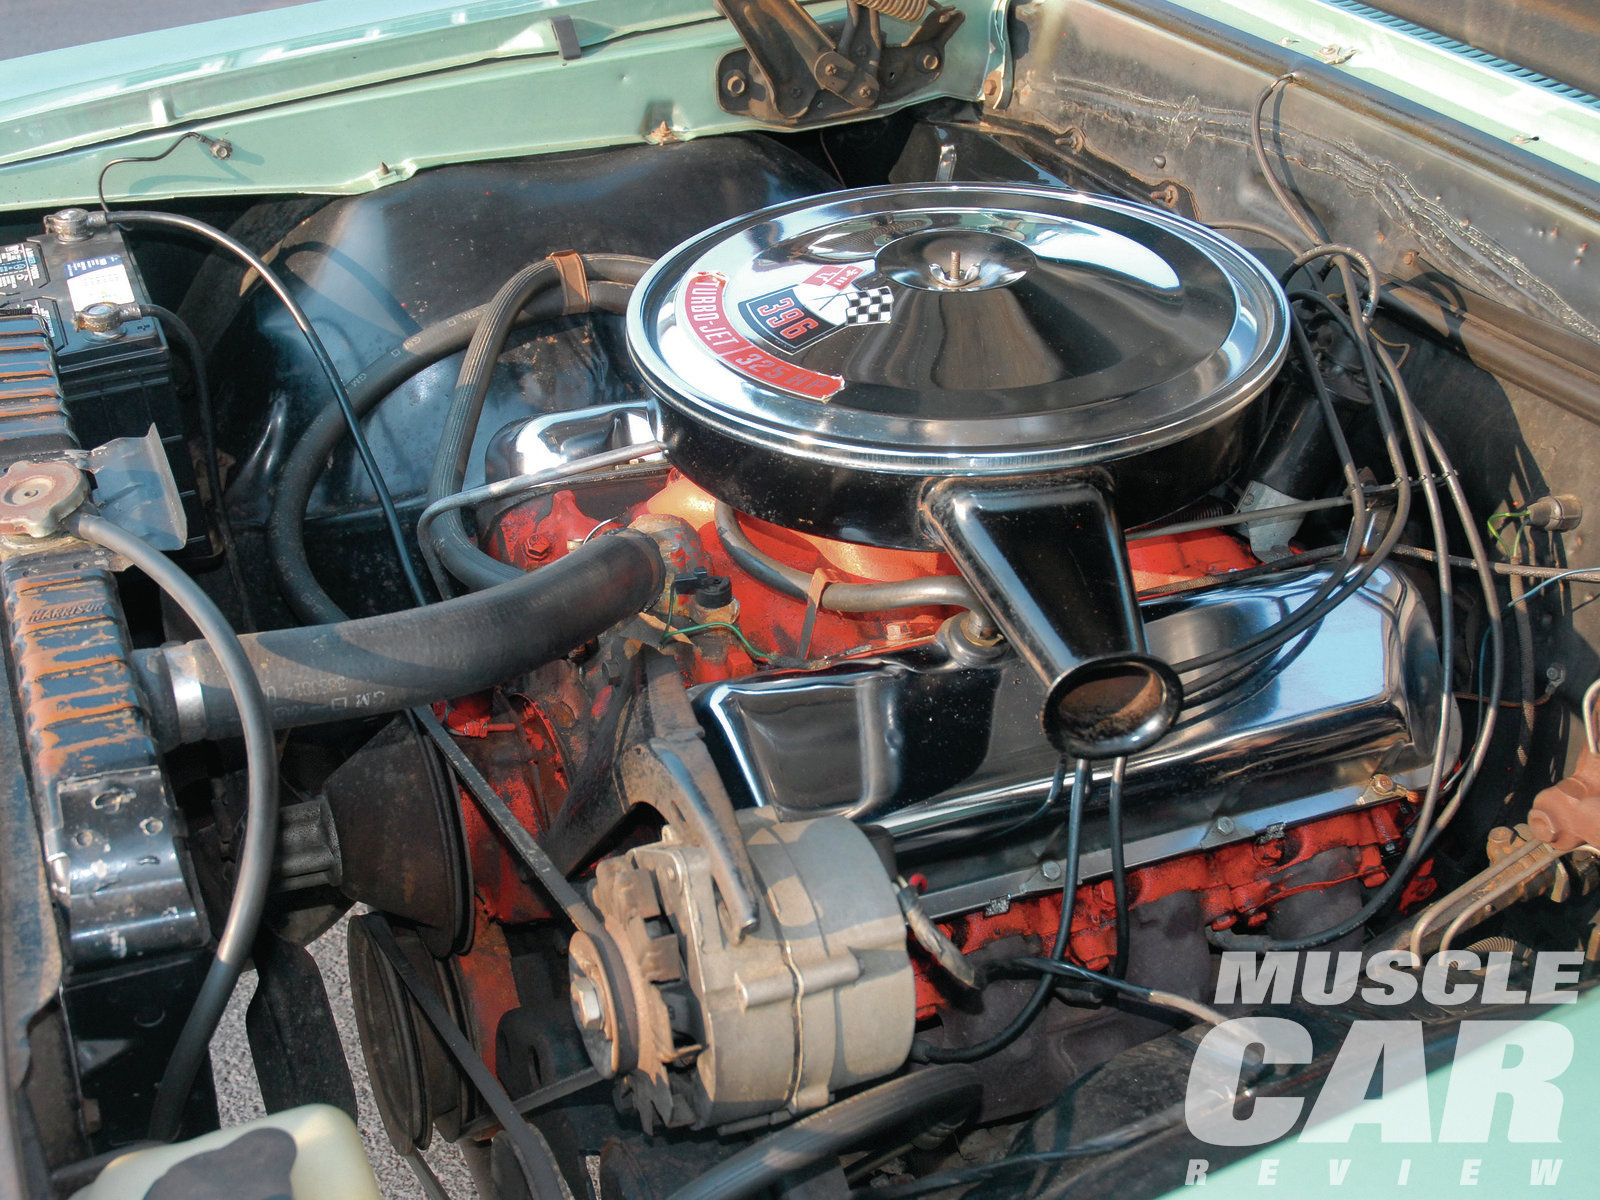 This particular Chevelle SS came equipped with the lower-compression (10.25:1), Rochester-carbureted 396ci big-block. Though the car is low-mileage, the engine bay wears the patina that comes after nearly a half-century.